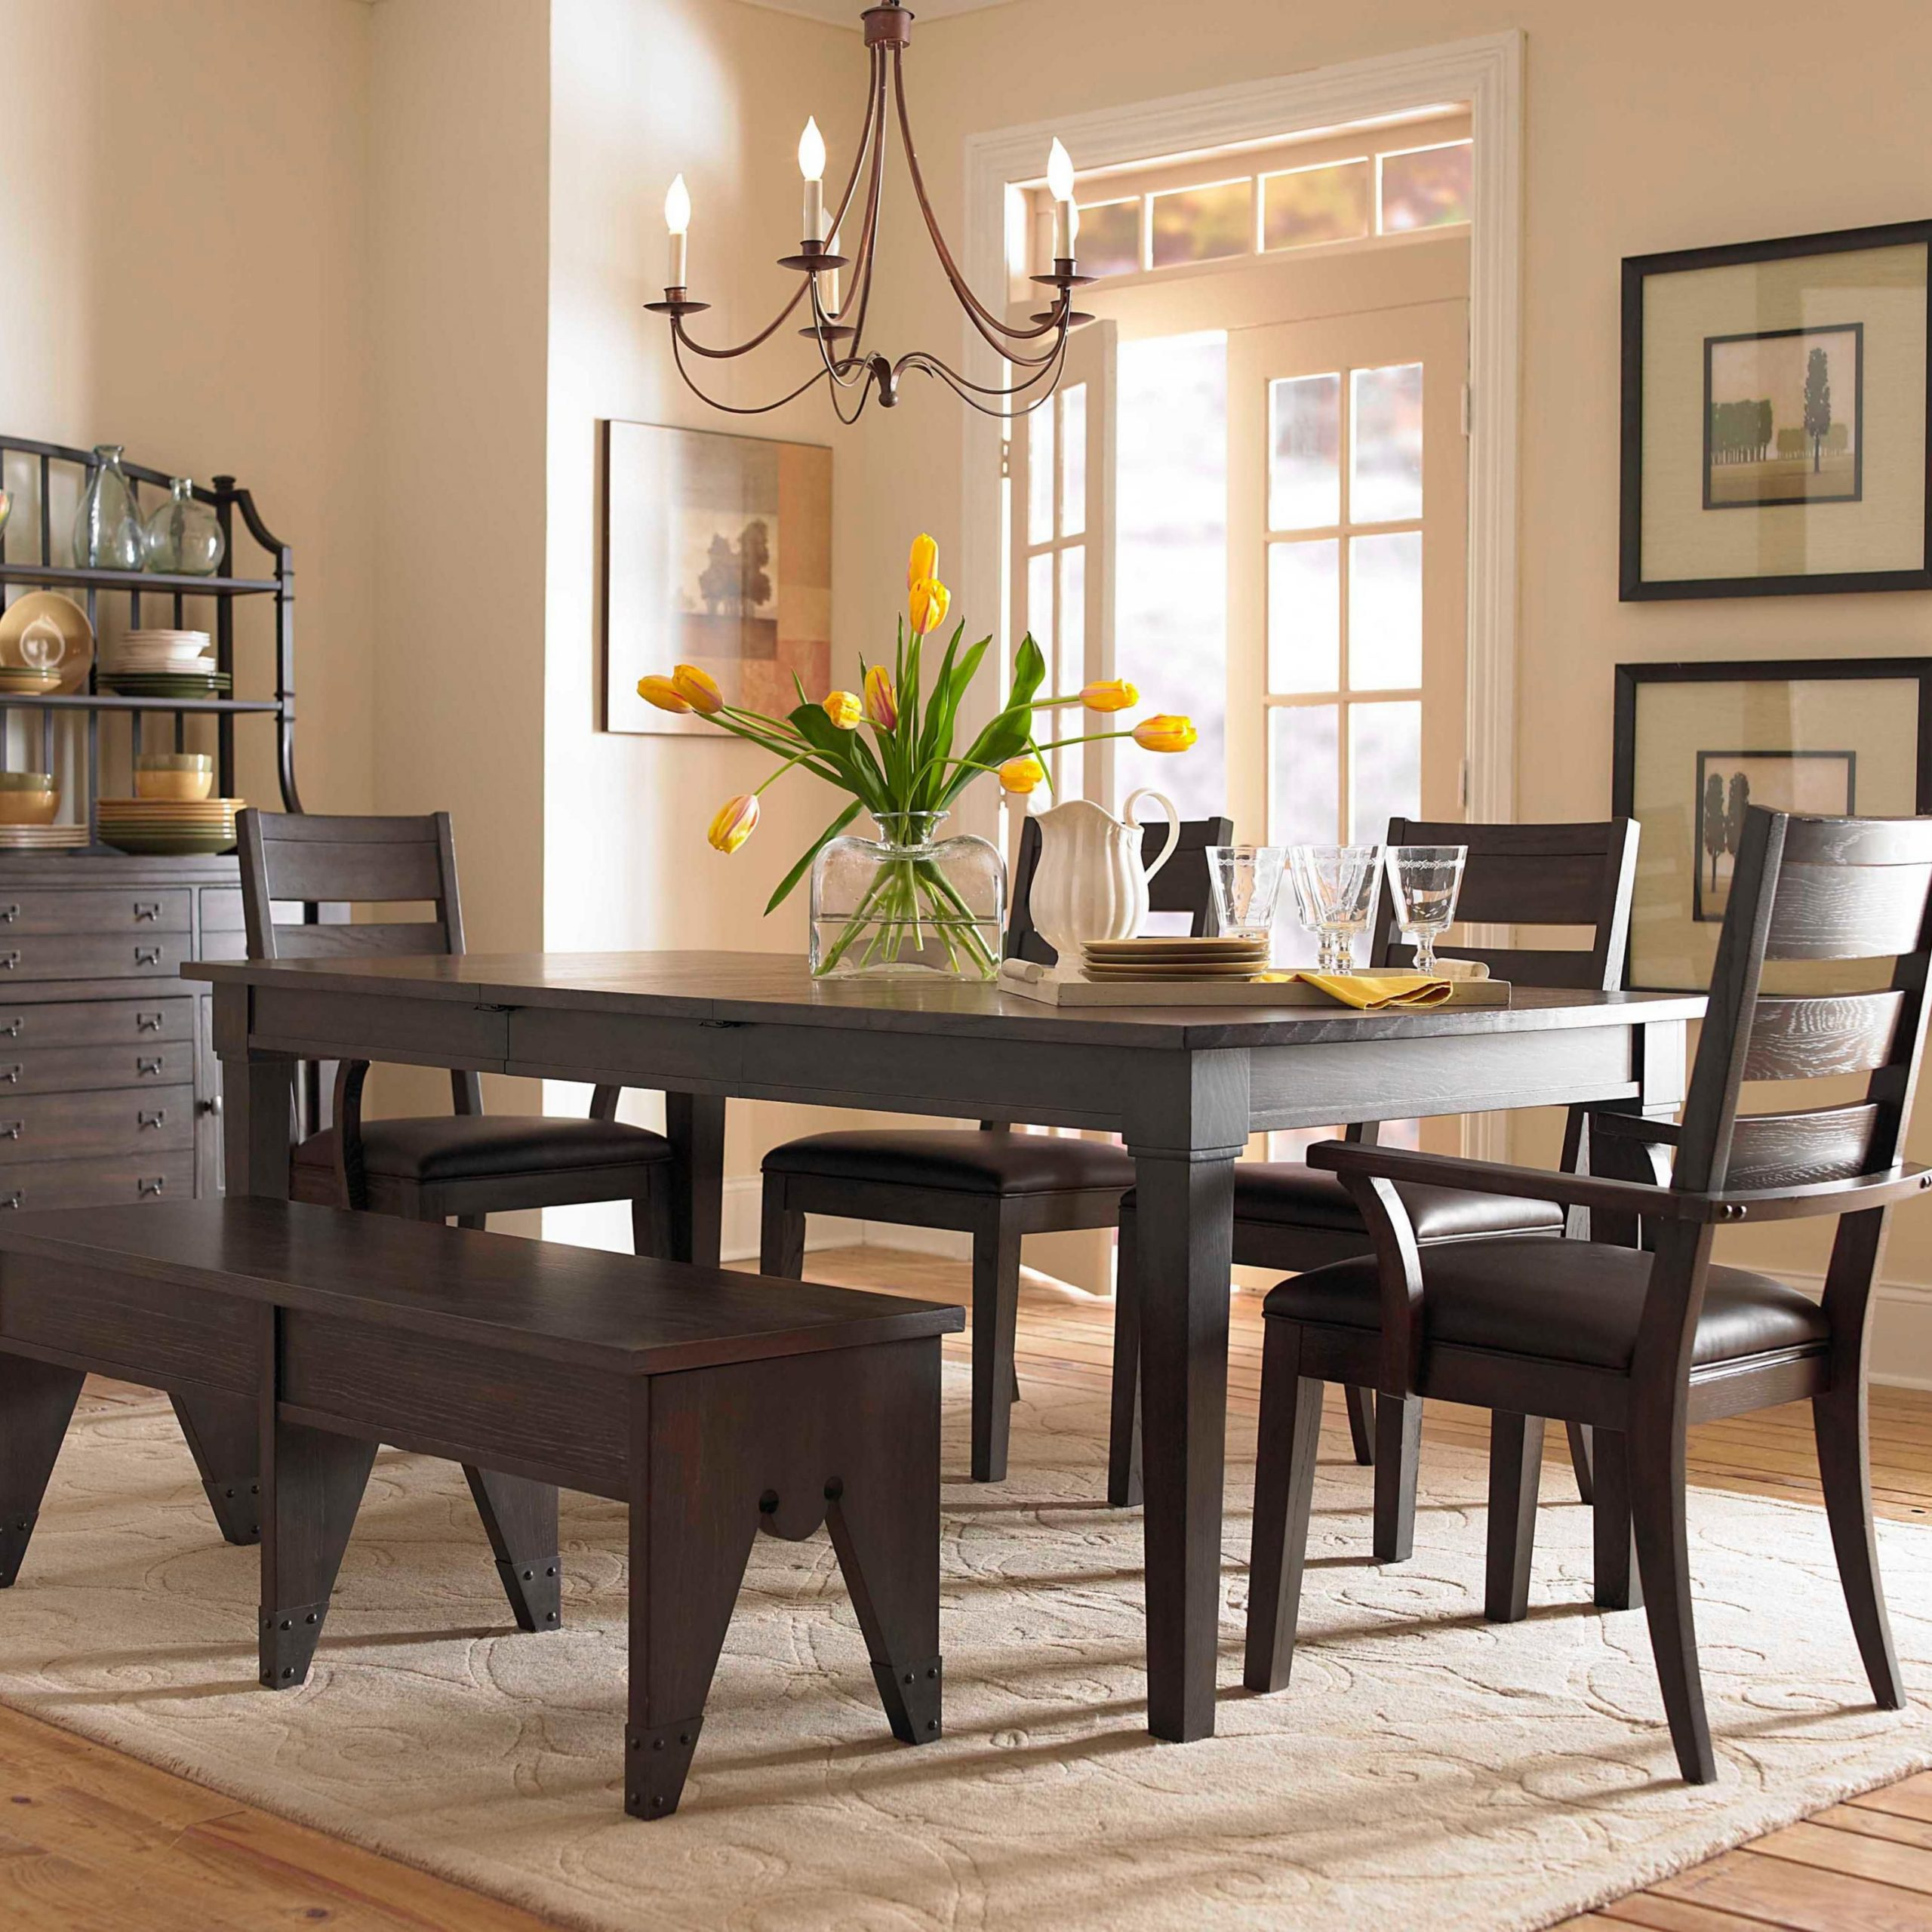 Fashionable Transitional 6 Seating Casual Dining Tables For Broyhill Furniture: Attic Retreat 6 Piece Dining Table (View 11 of 30)